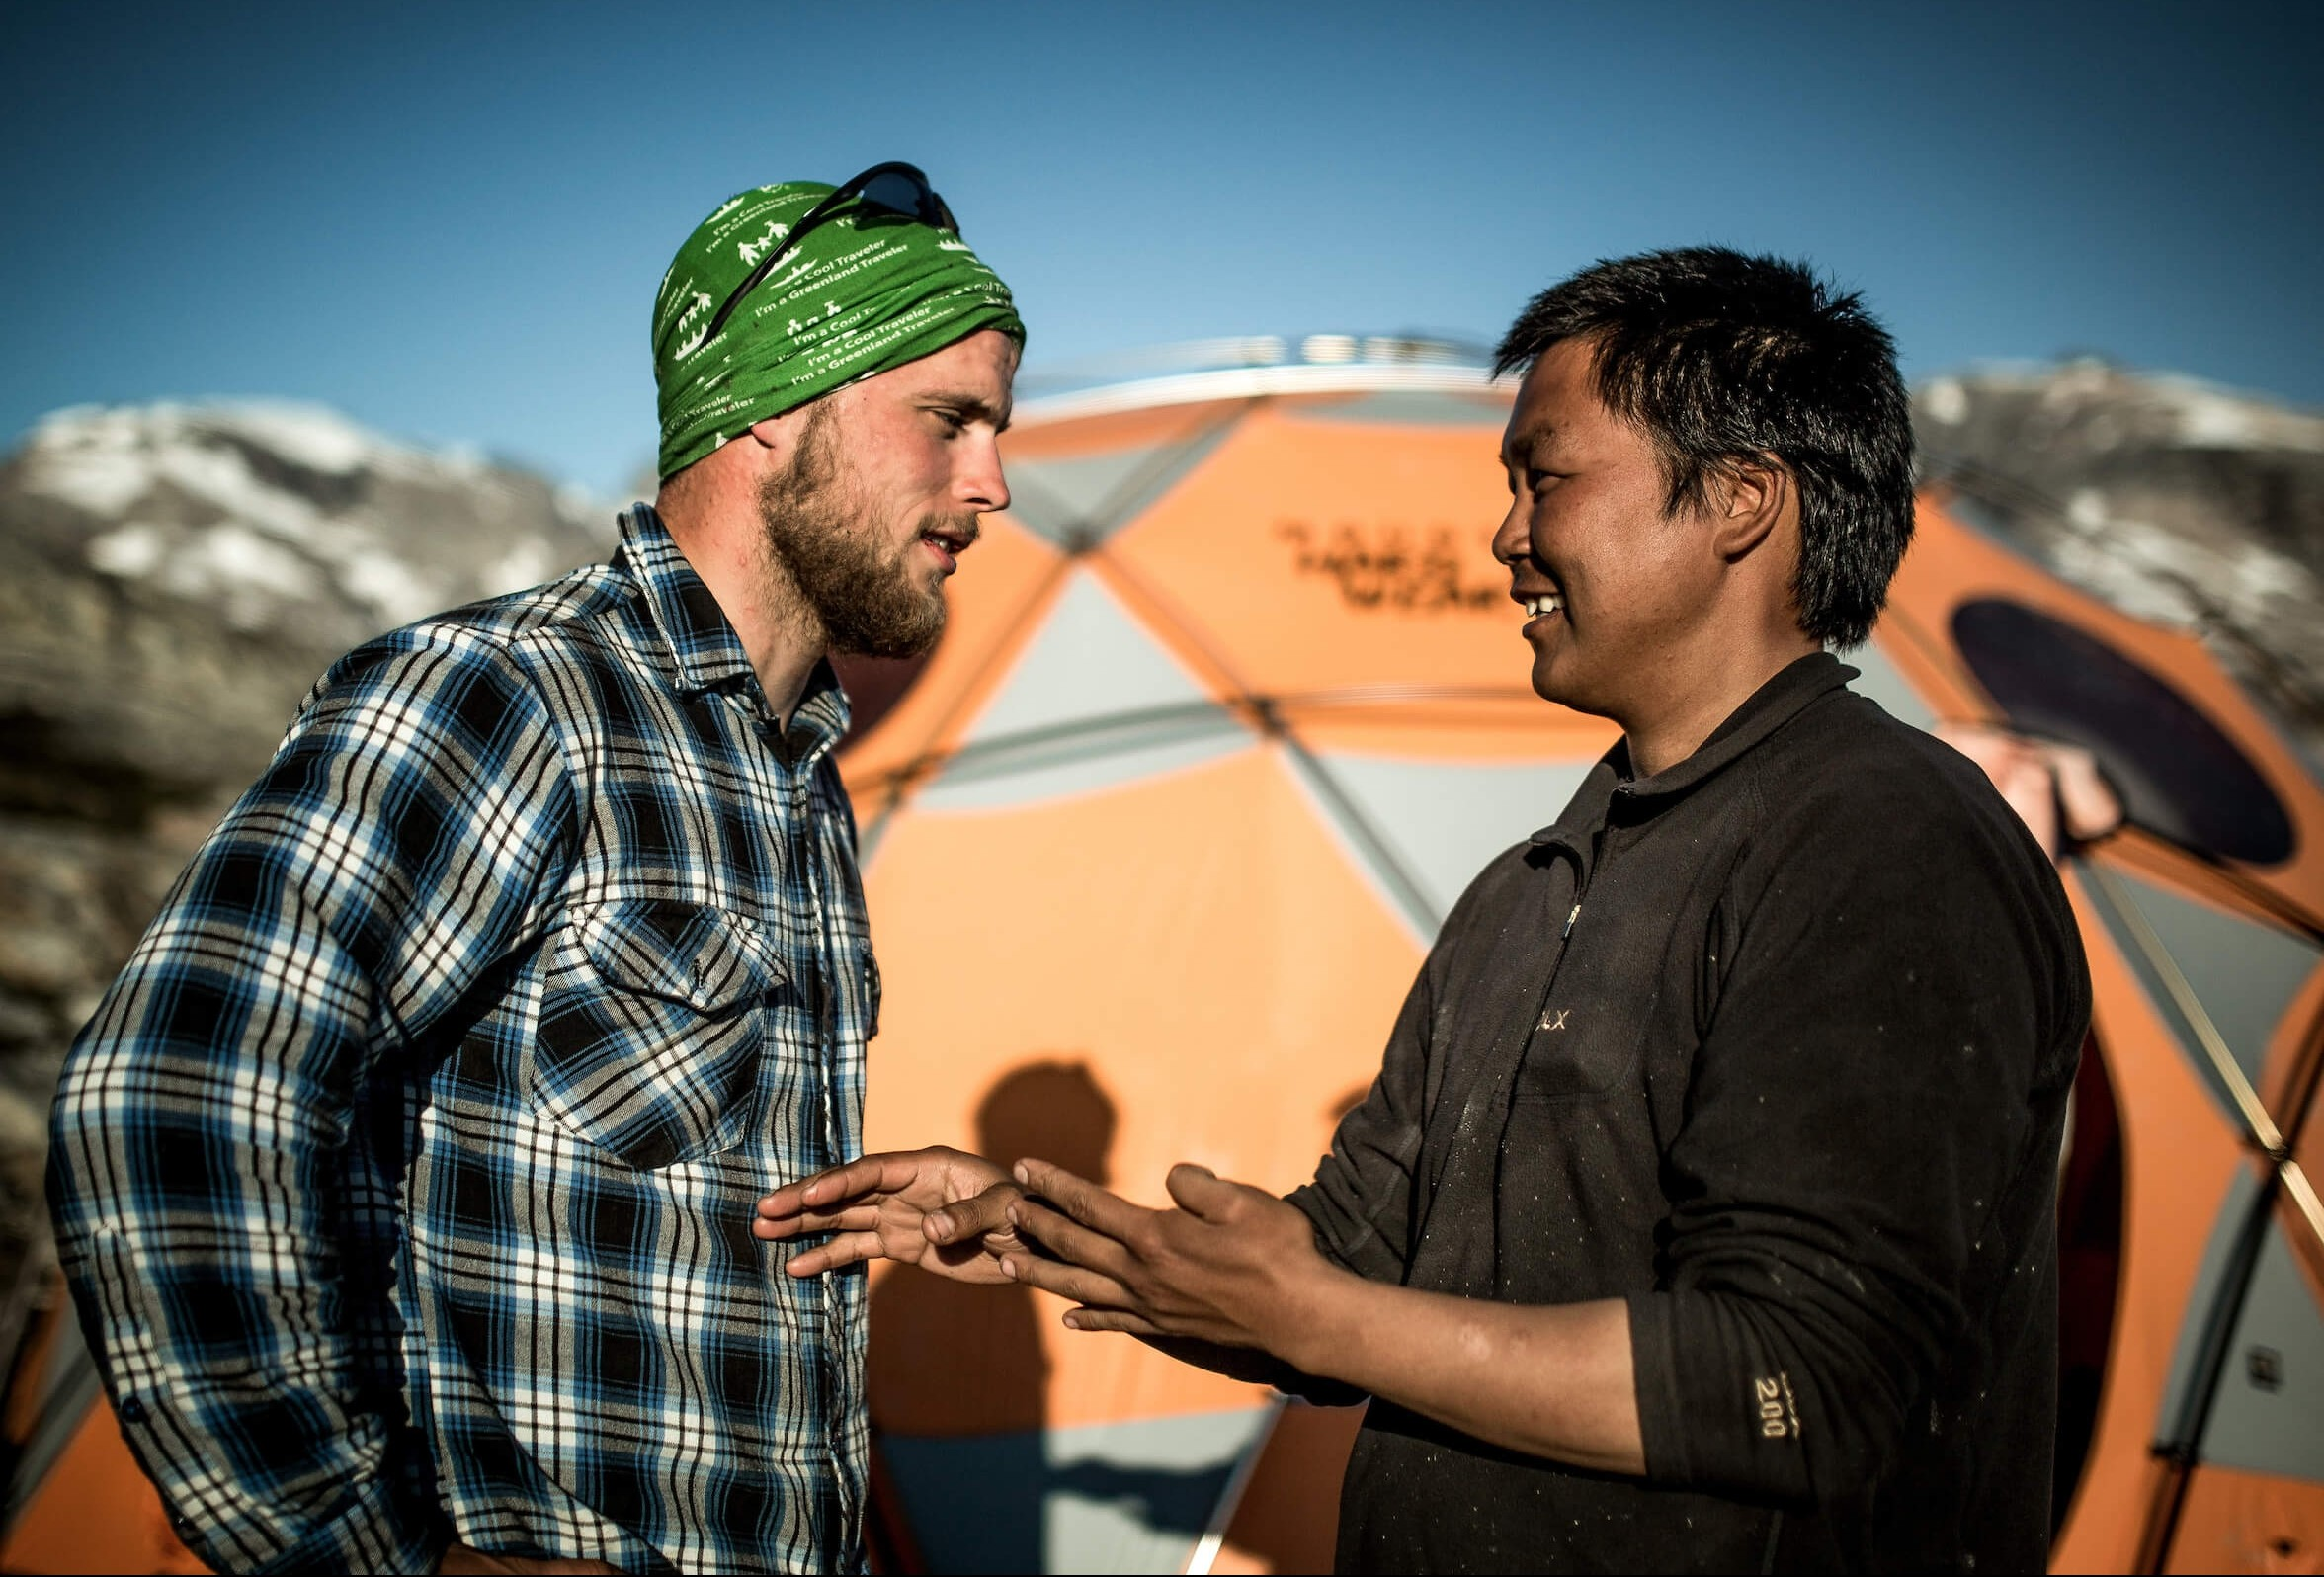 A Greenland Travel hiking guide and a local camp manager from East Greenland discussing the pronounciation of East Greenlandic words. Photo by Mads Pihl, Visit Greenland